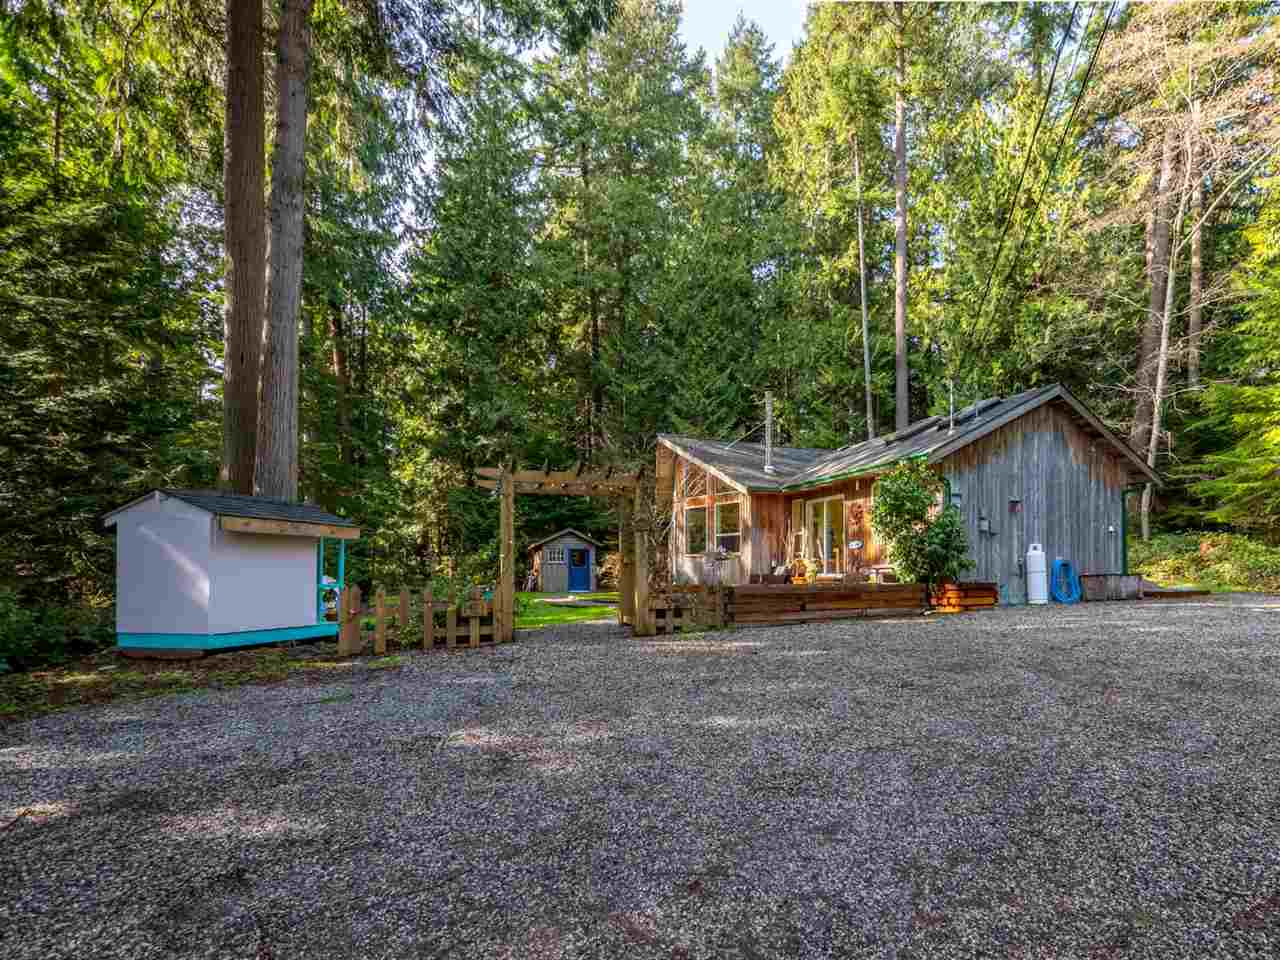 Photo 2: Photos: 1421 MARGARET Road: Roberts Creek House for sale (Sunshine Coast)  : MLS® # R2243186